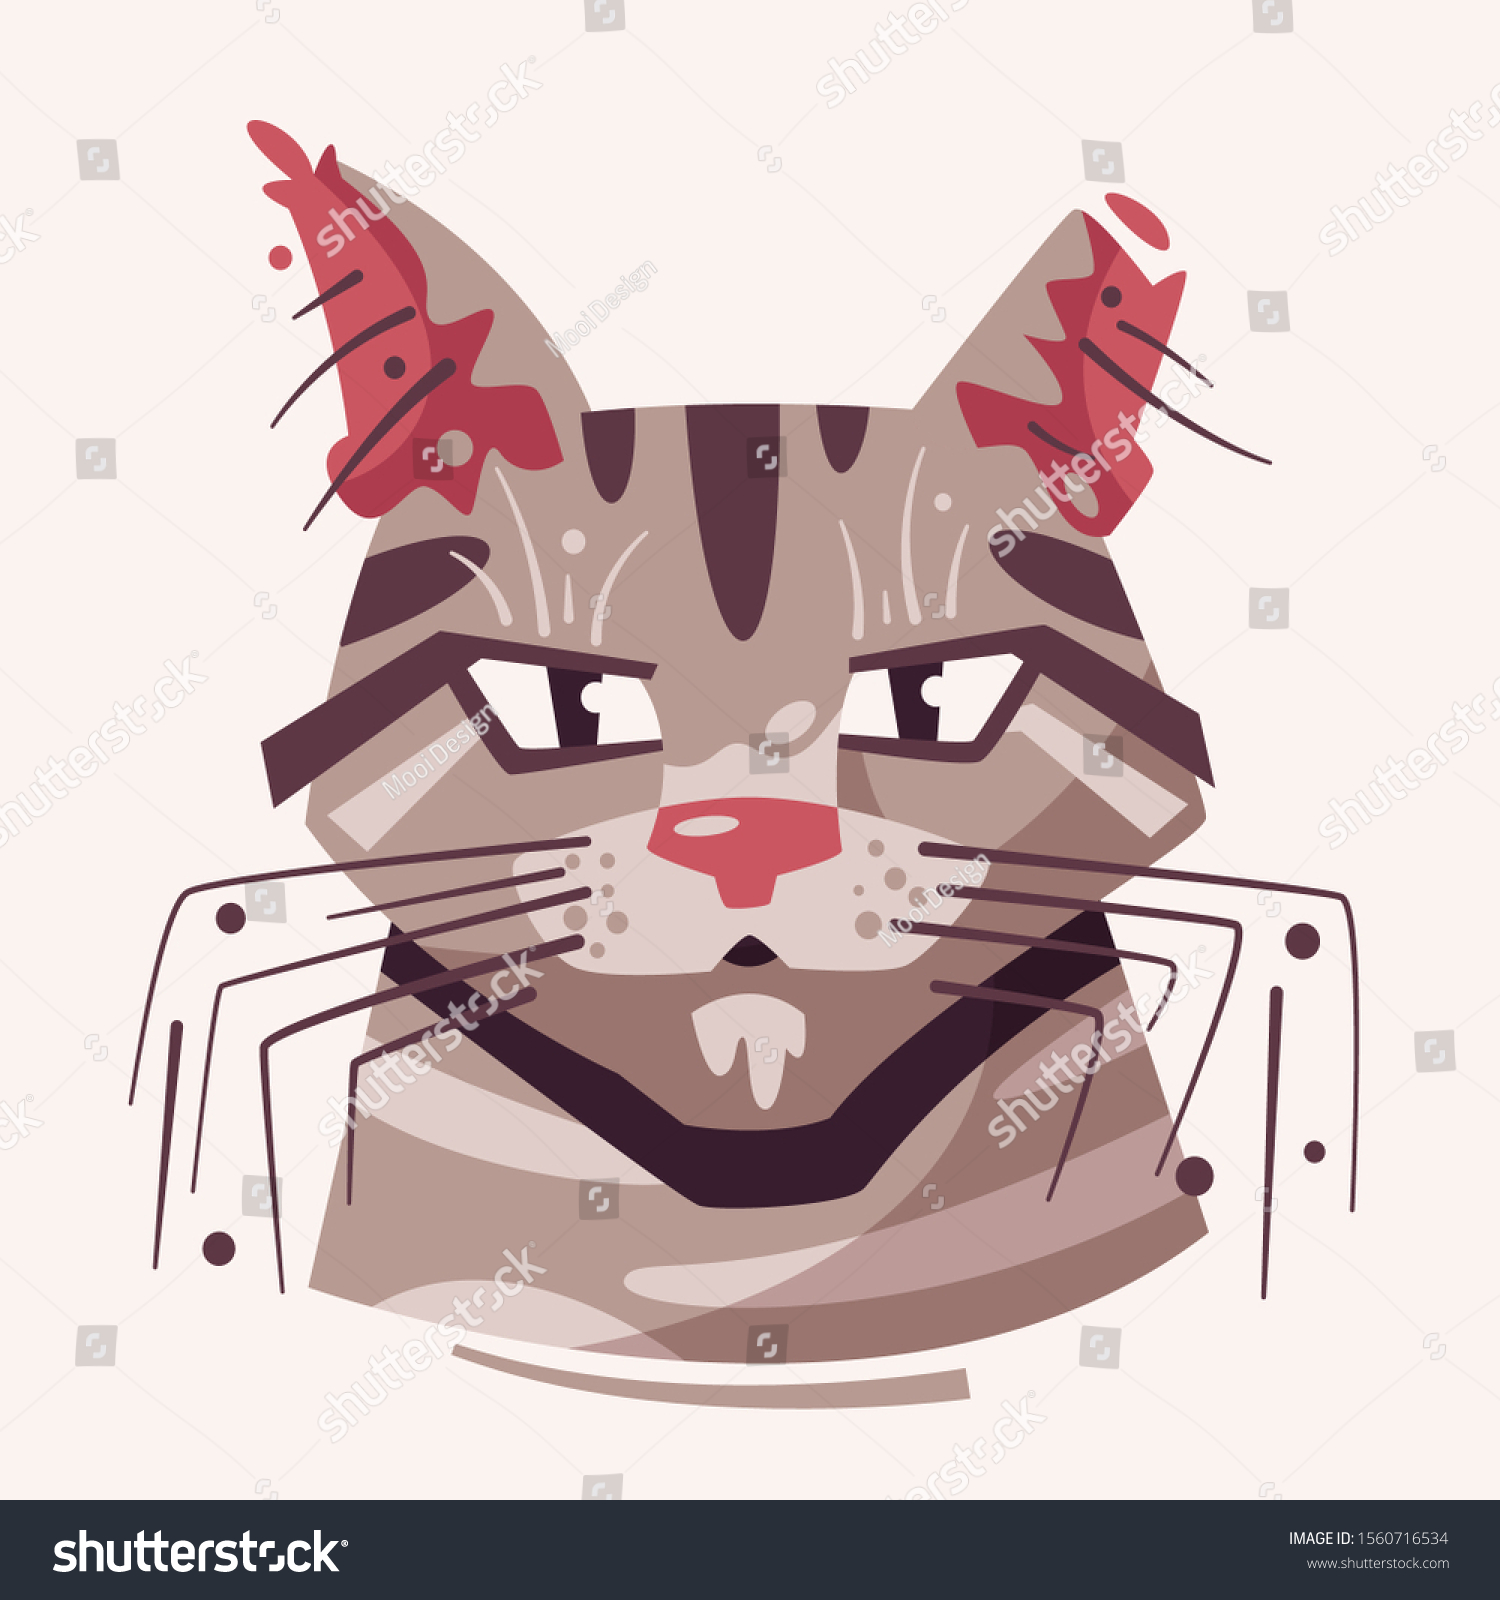 Cute Cat Face Flat Vector Illustration Stock Vector Royalty Free